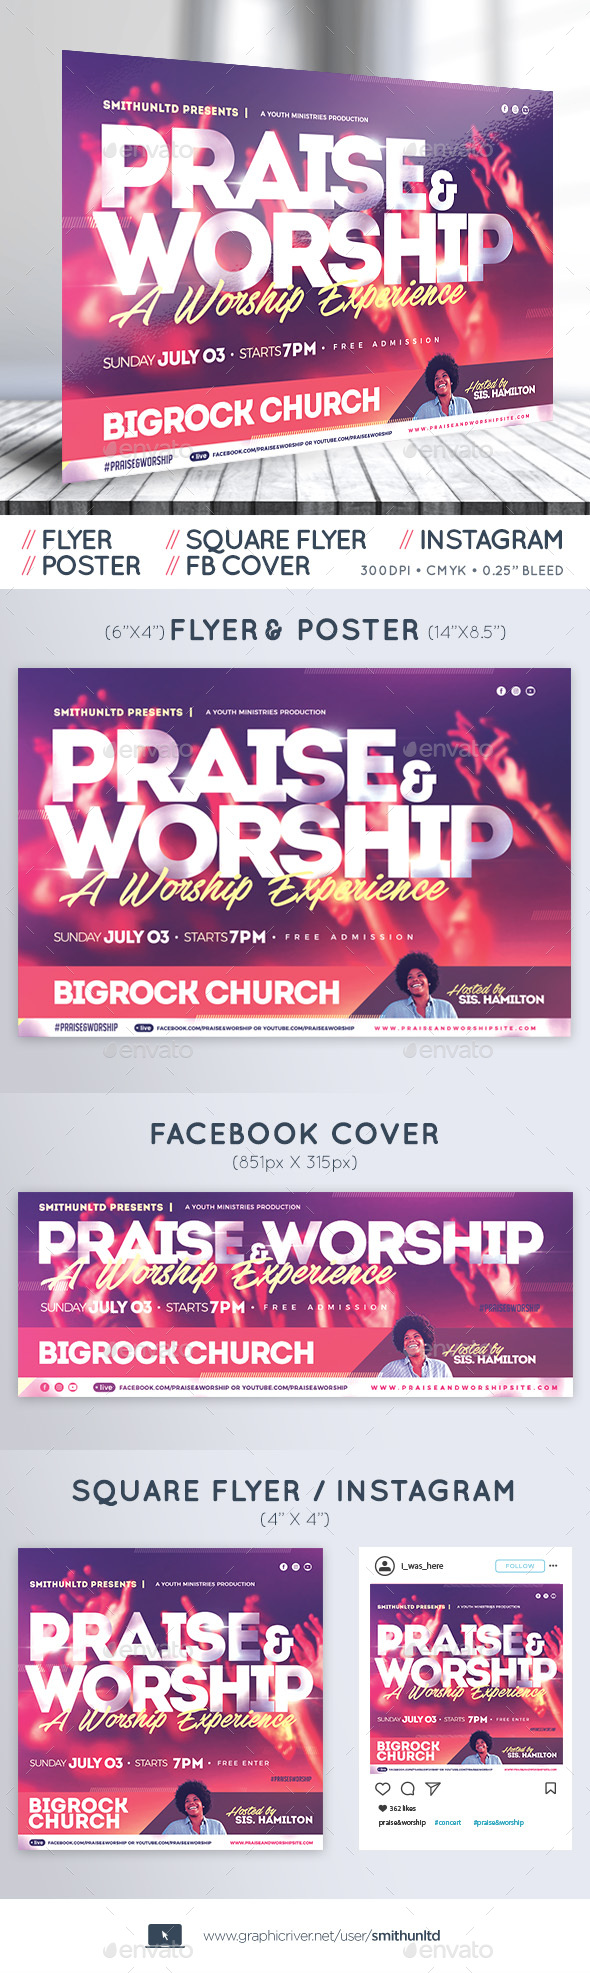 Worship Flyer Graphics, Designs & Templates from GraphicRiver